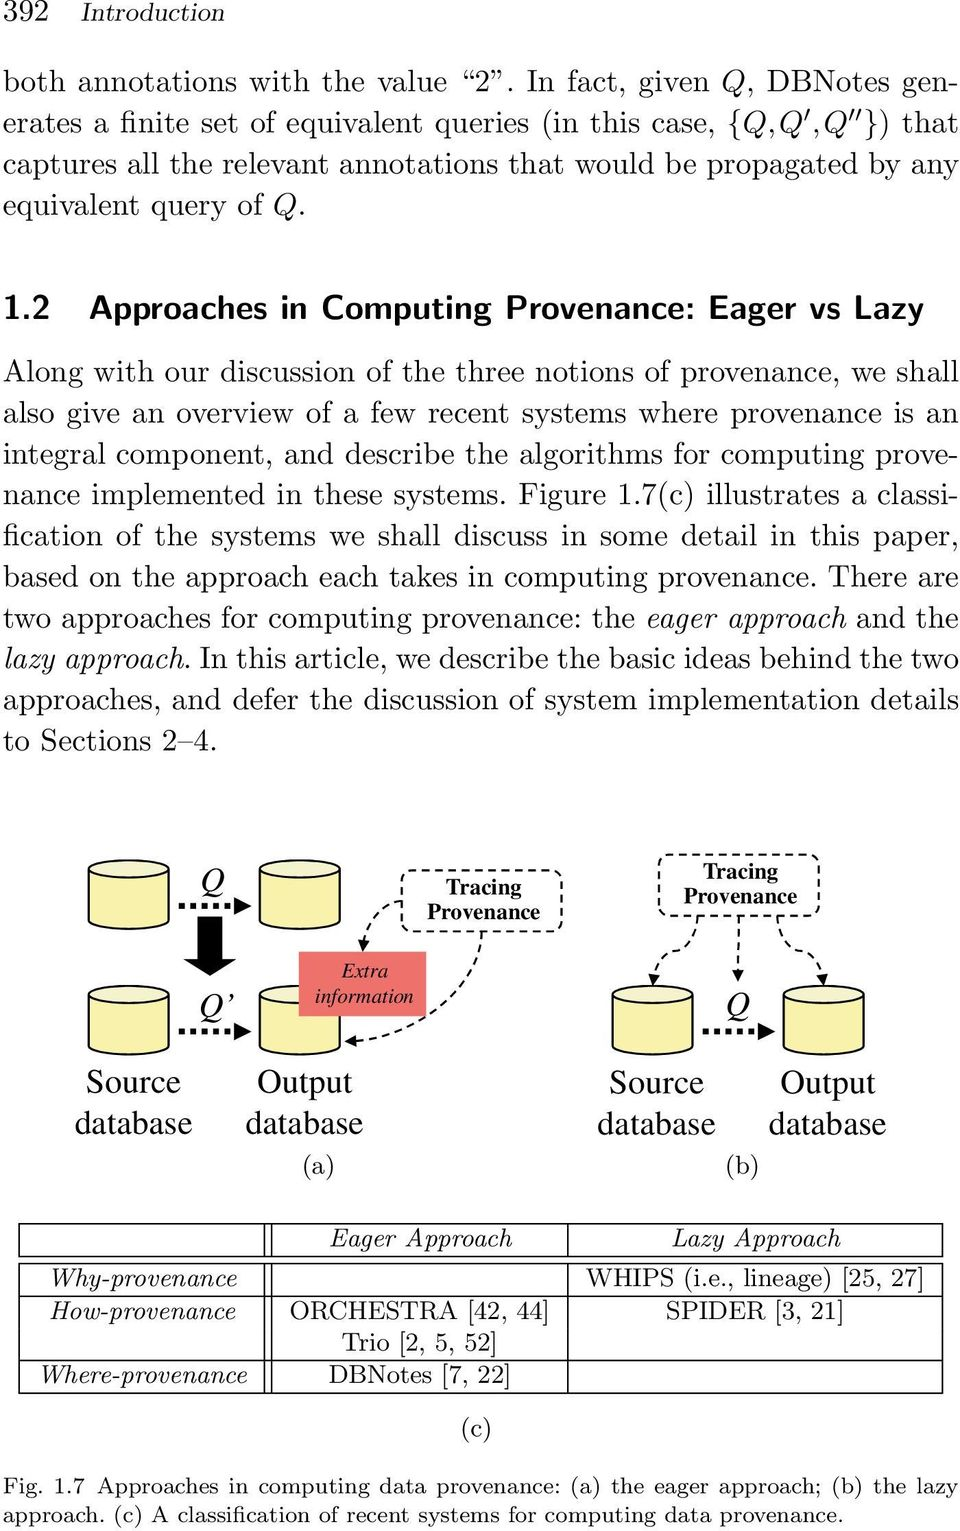 2 Approaches in Computing Provenance: Eager vs Lazy Along with our discussion of the three notions of provenance, we shall also give an overview of a few recent systems where provenance is an